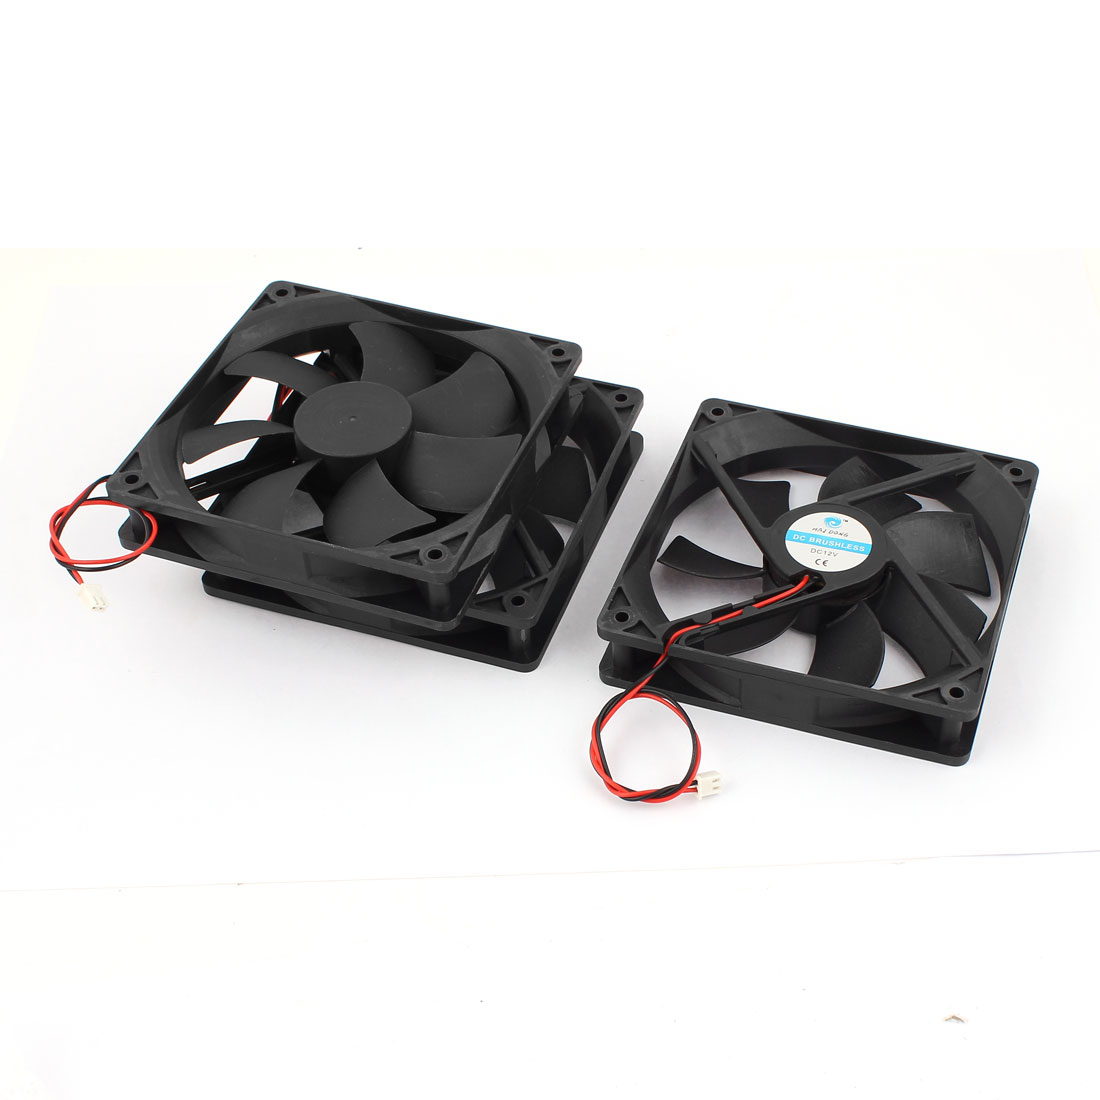 3pcs 12cmx12cmx2.5cm Black Plastic DC 12V 2 Terminal Connector PC CPU Desktop Cooling Cooler Fan